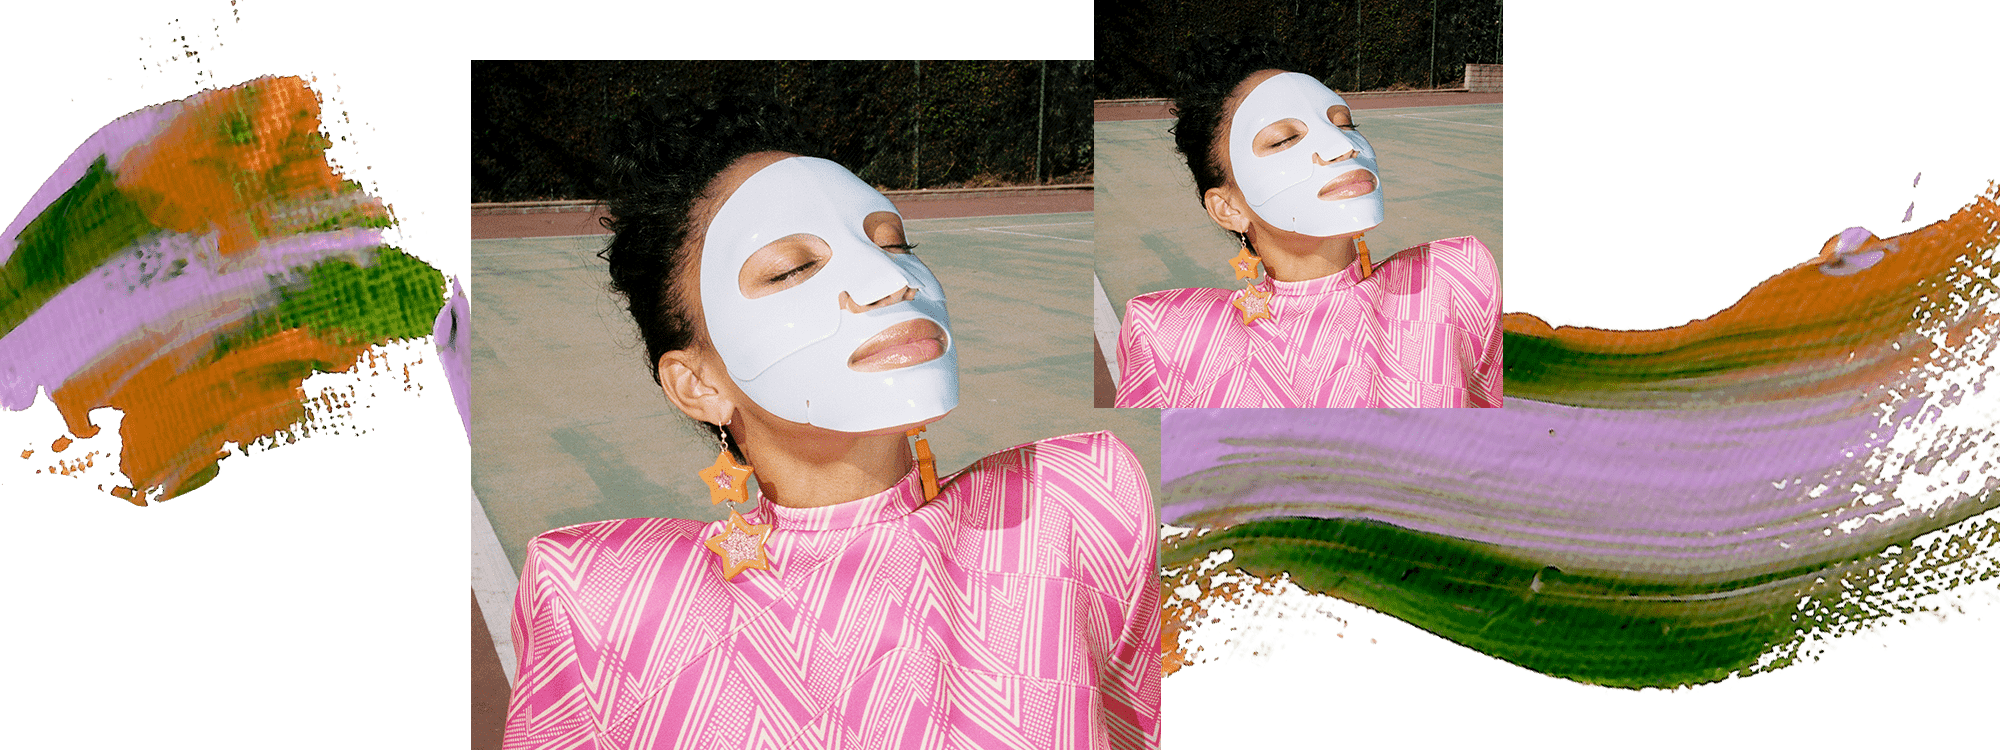 Model Lyric Mariah is wearing a sheet mask and sitting on the ground with her face turned up to the sky. She is wearing a pink striped top and orange star earrings. There is a decorative paint swatch of pink, purple, and green across the image.